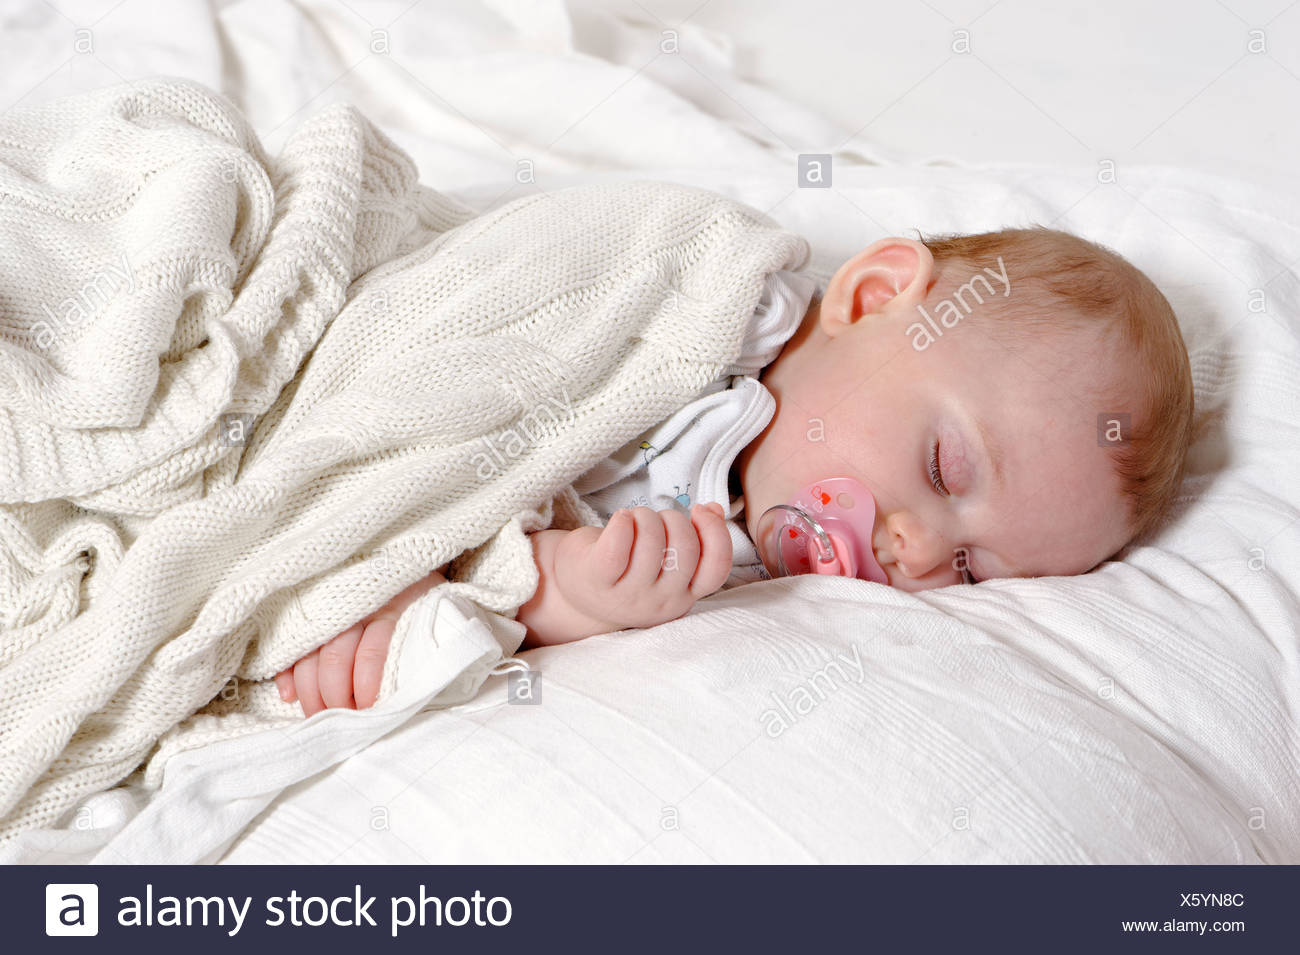 Baby, 6 months, sleeping with a dummy - Stock Image